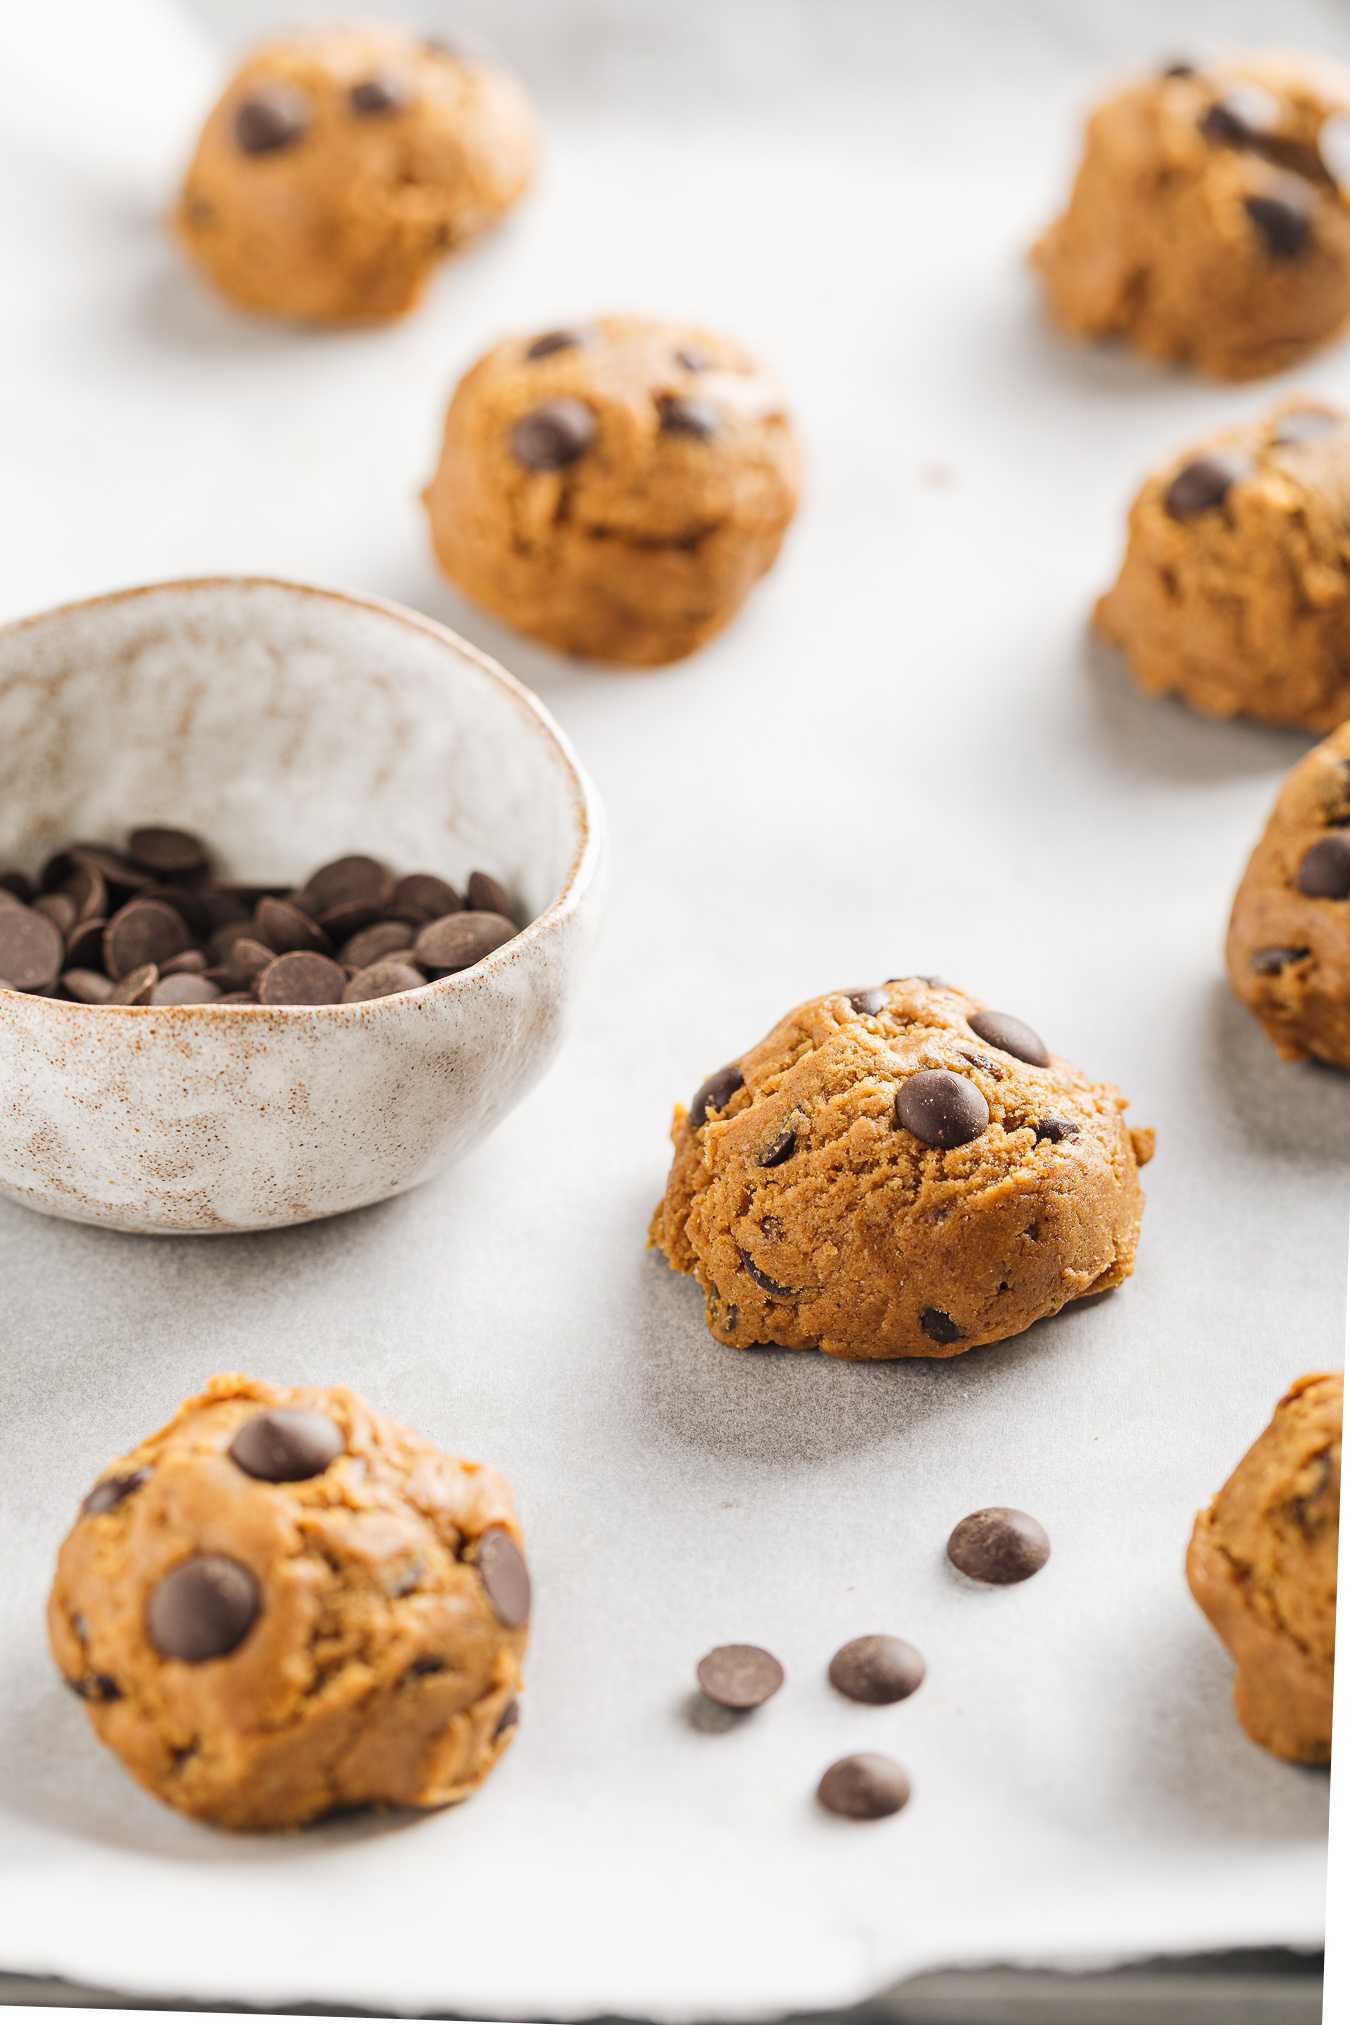 come preparare la ricetta dei COOKIES alla ZUCCA e CIOCCOLATO Vegan how to make healthy VEGAN PUMPKIN CHOCOLATE CHIP COOKIES senza uova senza burro